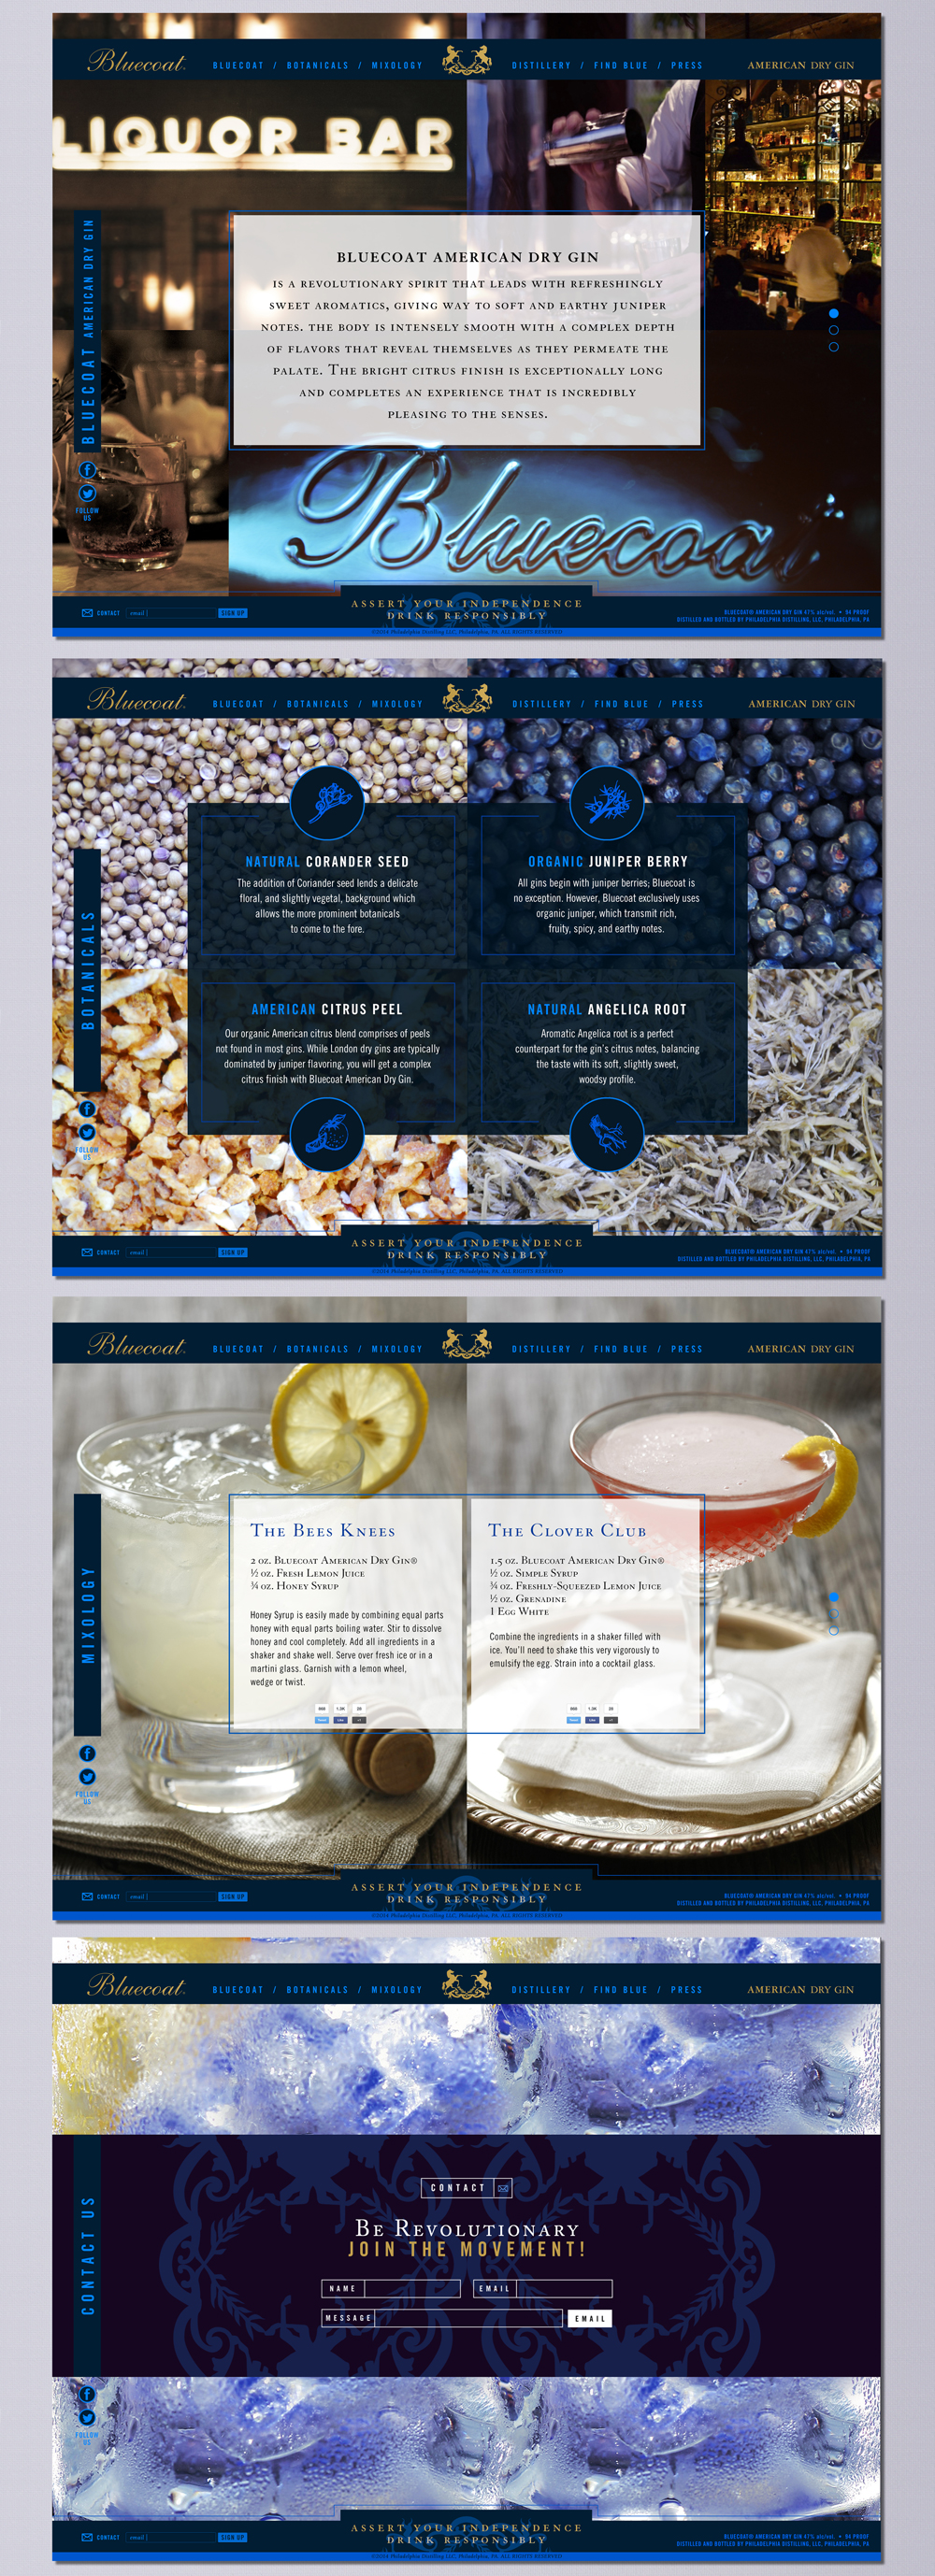 BLUECOAT-GIN-WEBDESIGN-Web-ID26_1000